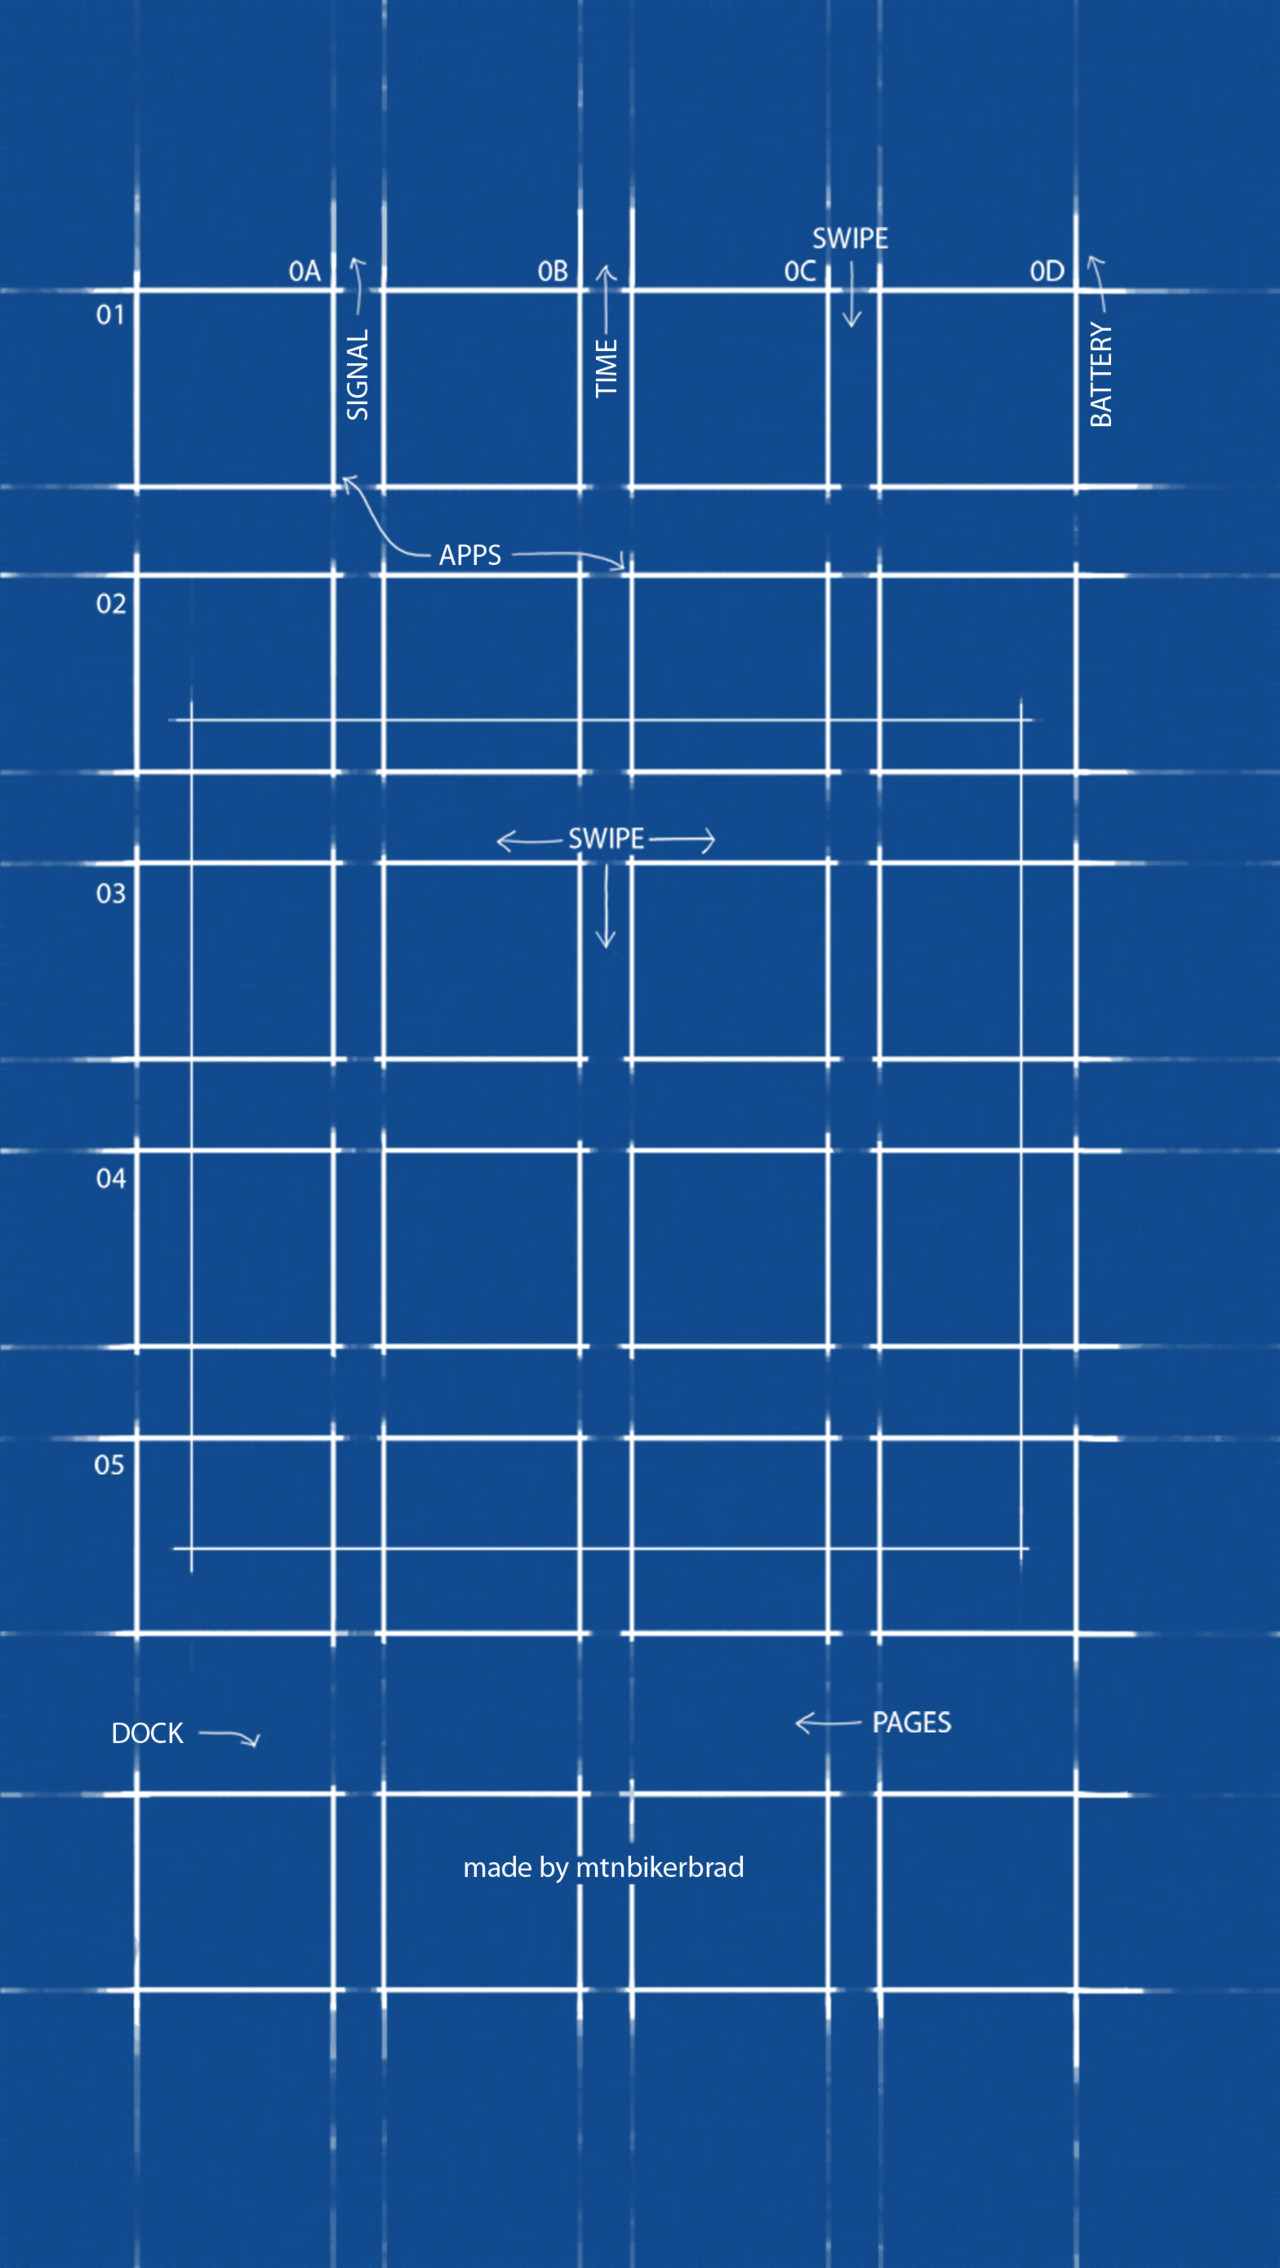 Iphone 6 grid wallpaper 80 images 1280x2268 blueprint wallpaper collection 71 malvernweather Image collections